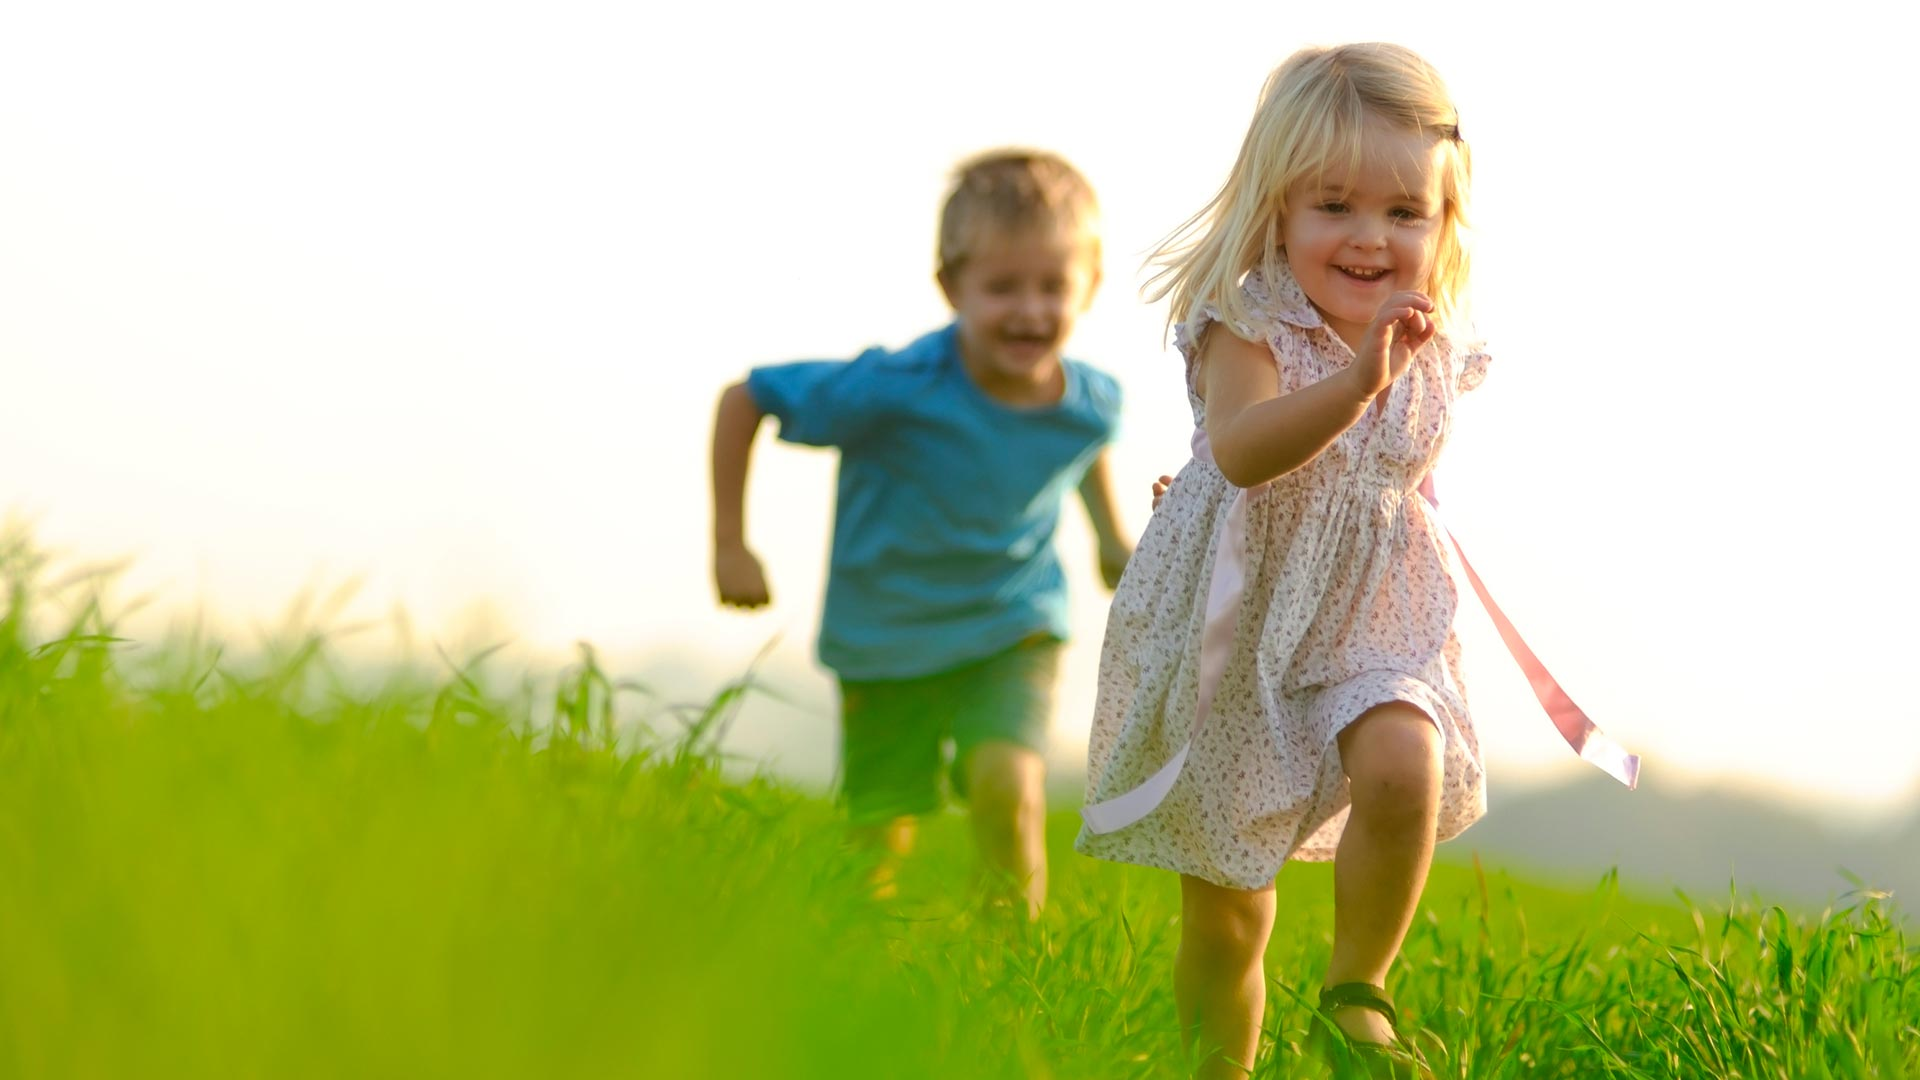 hd wallpaper kids chasing wallpapers55com   Best Wallpapers for PCs 1920x1080